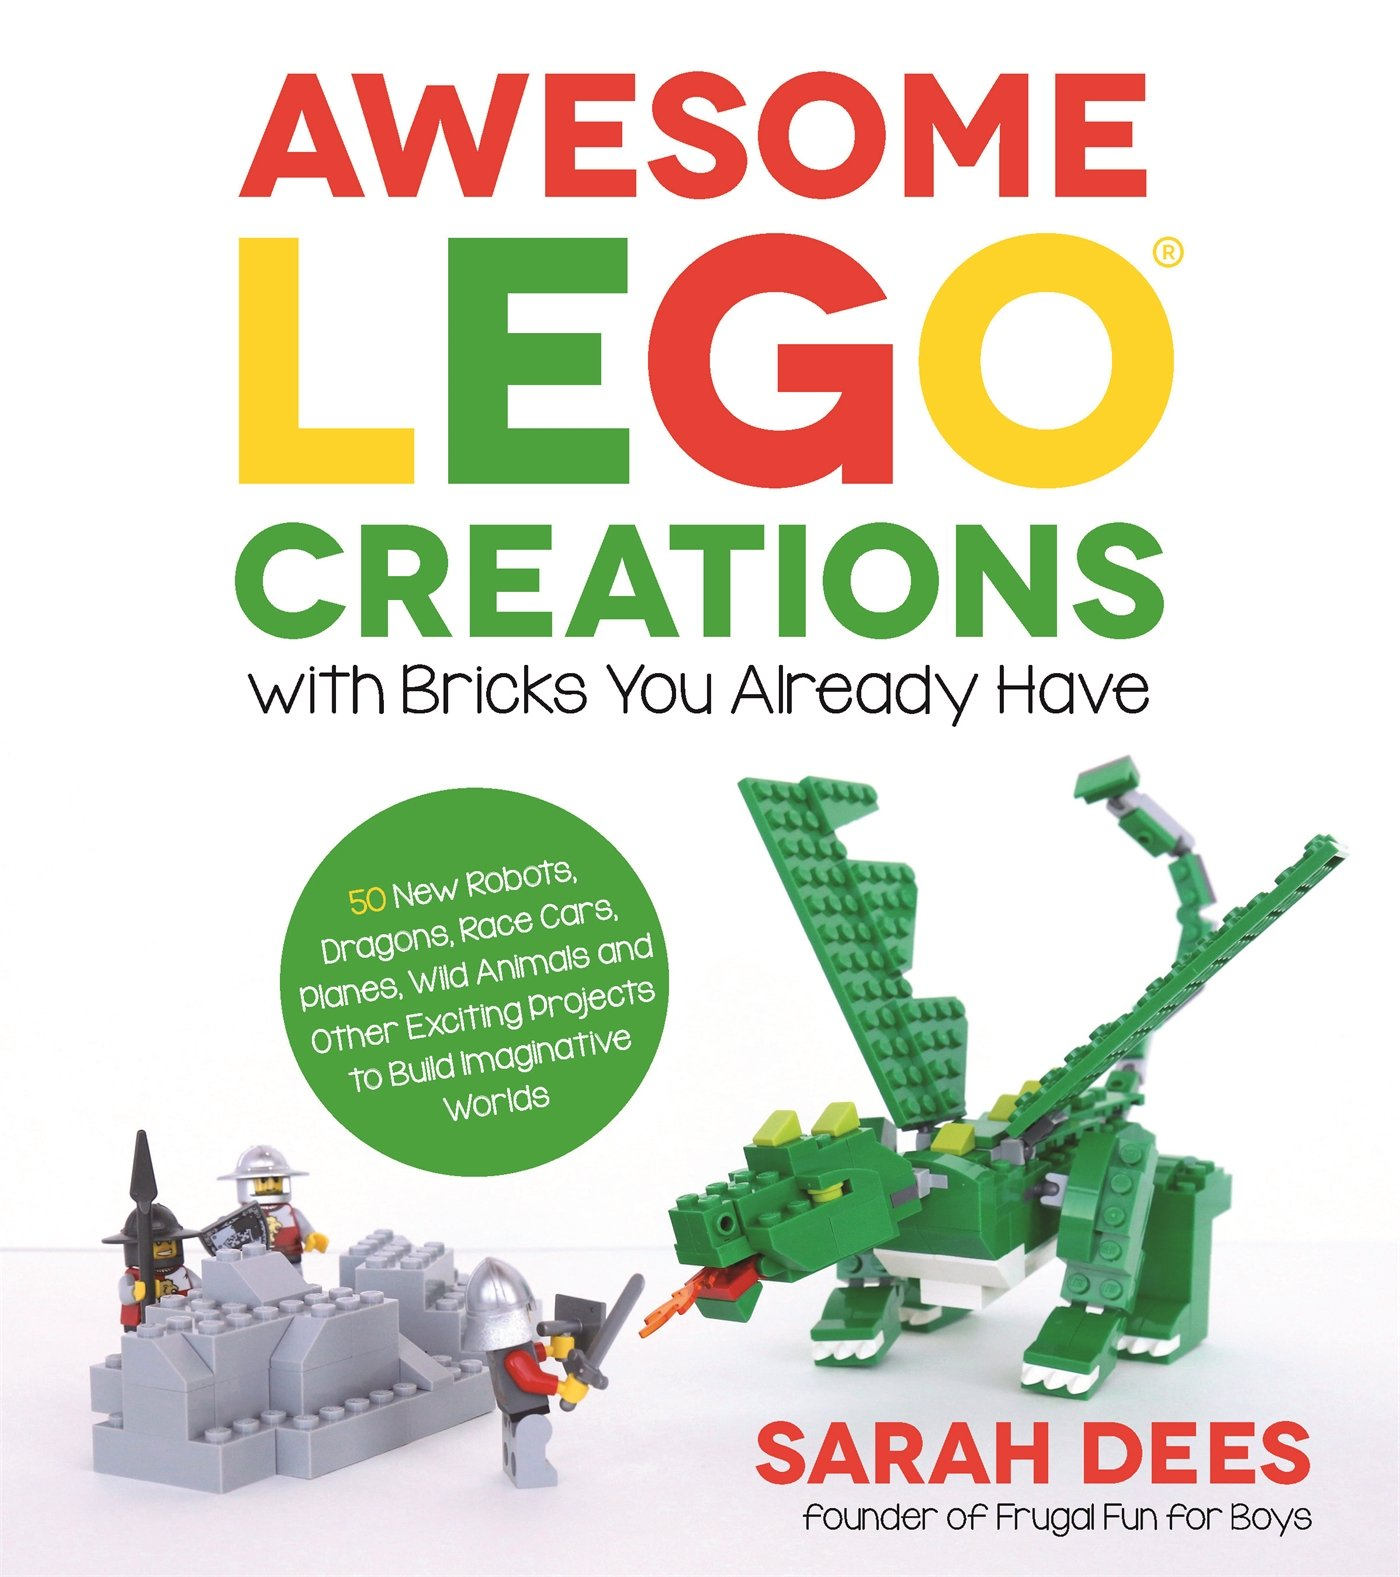 Awesome Lego Creations with Bricks You Already Have: 50 New Robots, Dragons, Race Cars, Planes, Wild Animals and Other Exciting Projects to Build Imaginative Worlds: Amazon.es: Dees, Sarah: Libros en idiomas extranjeros